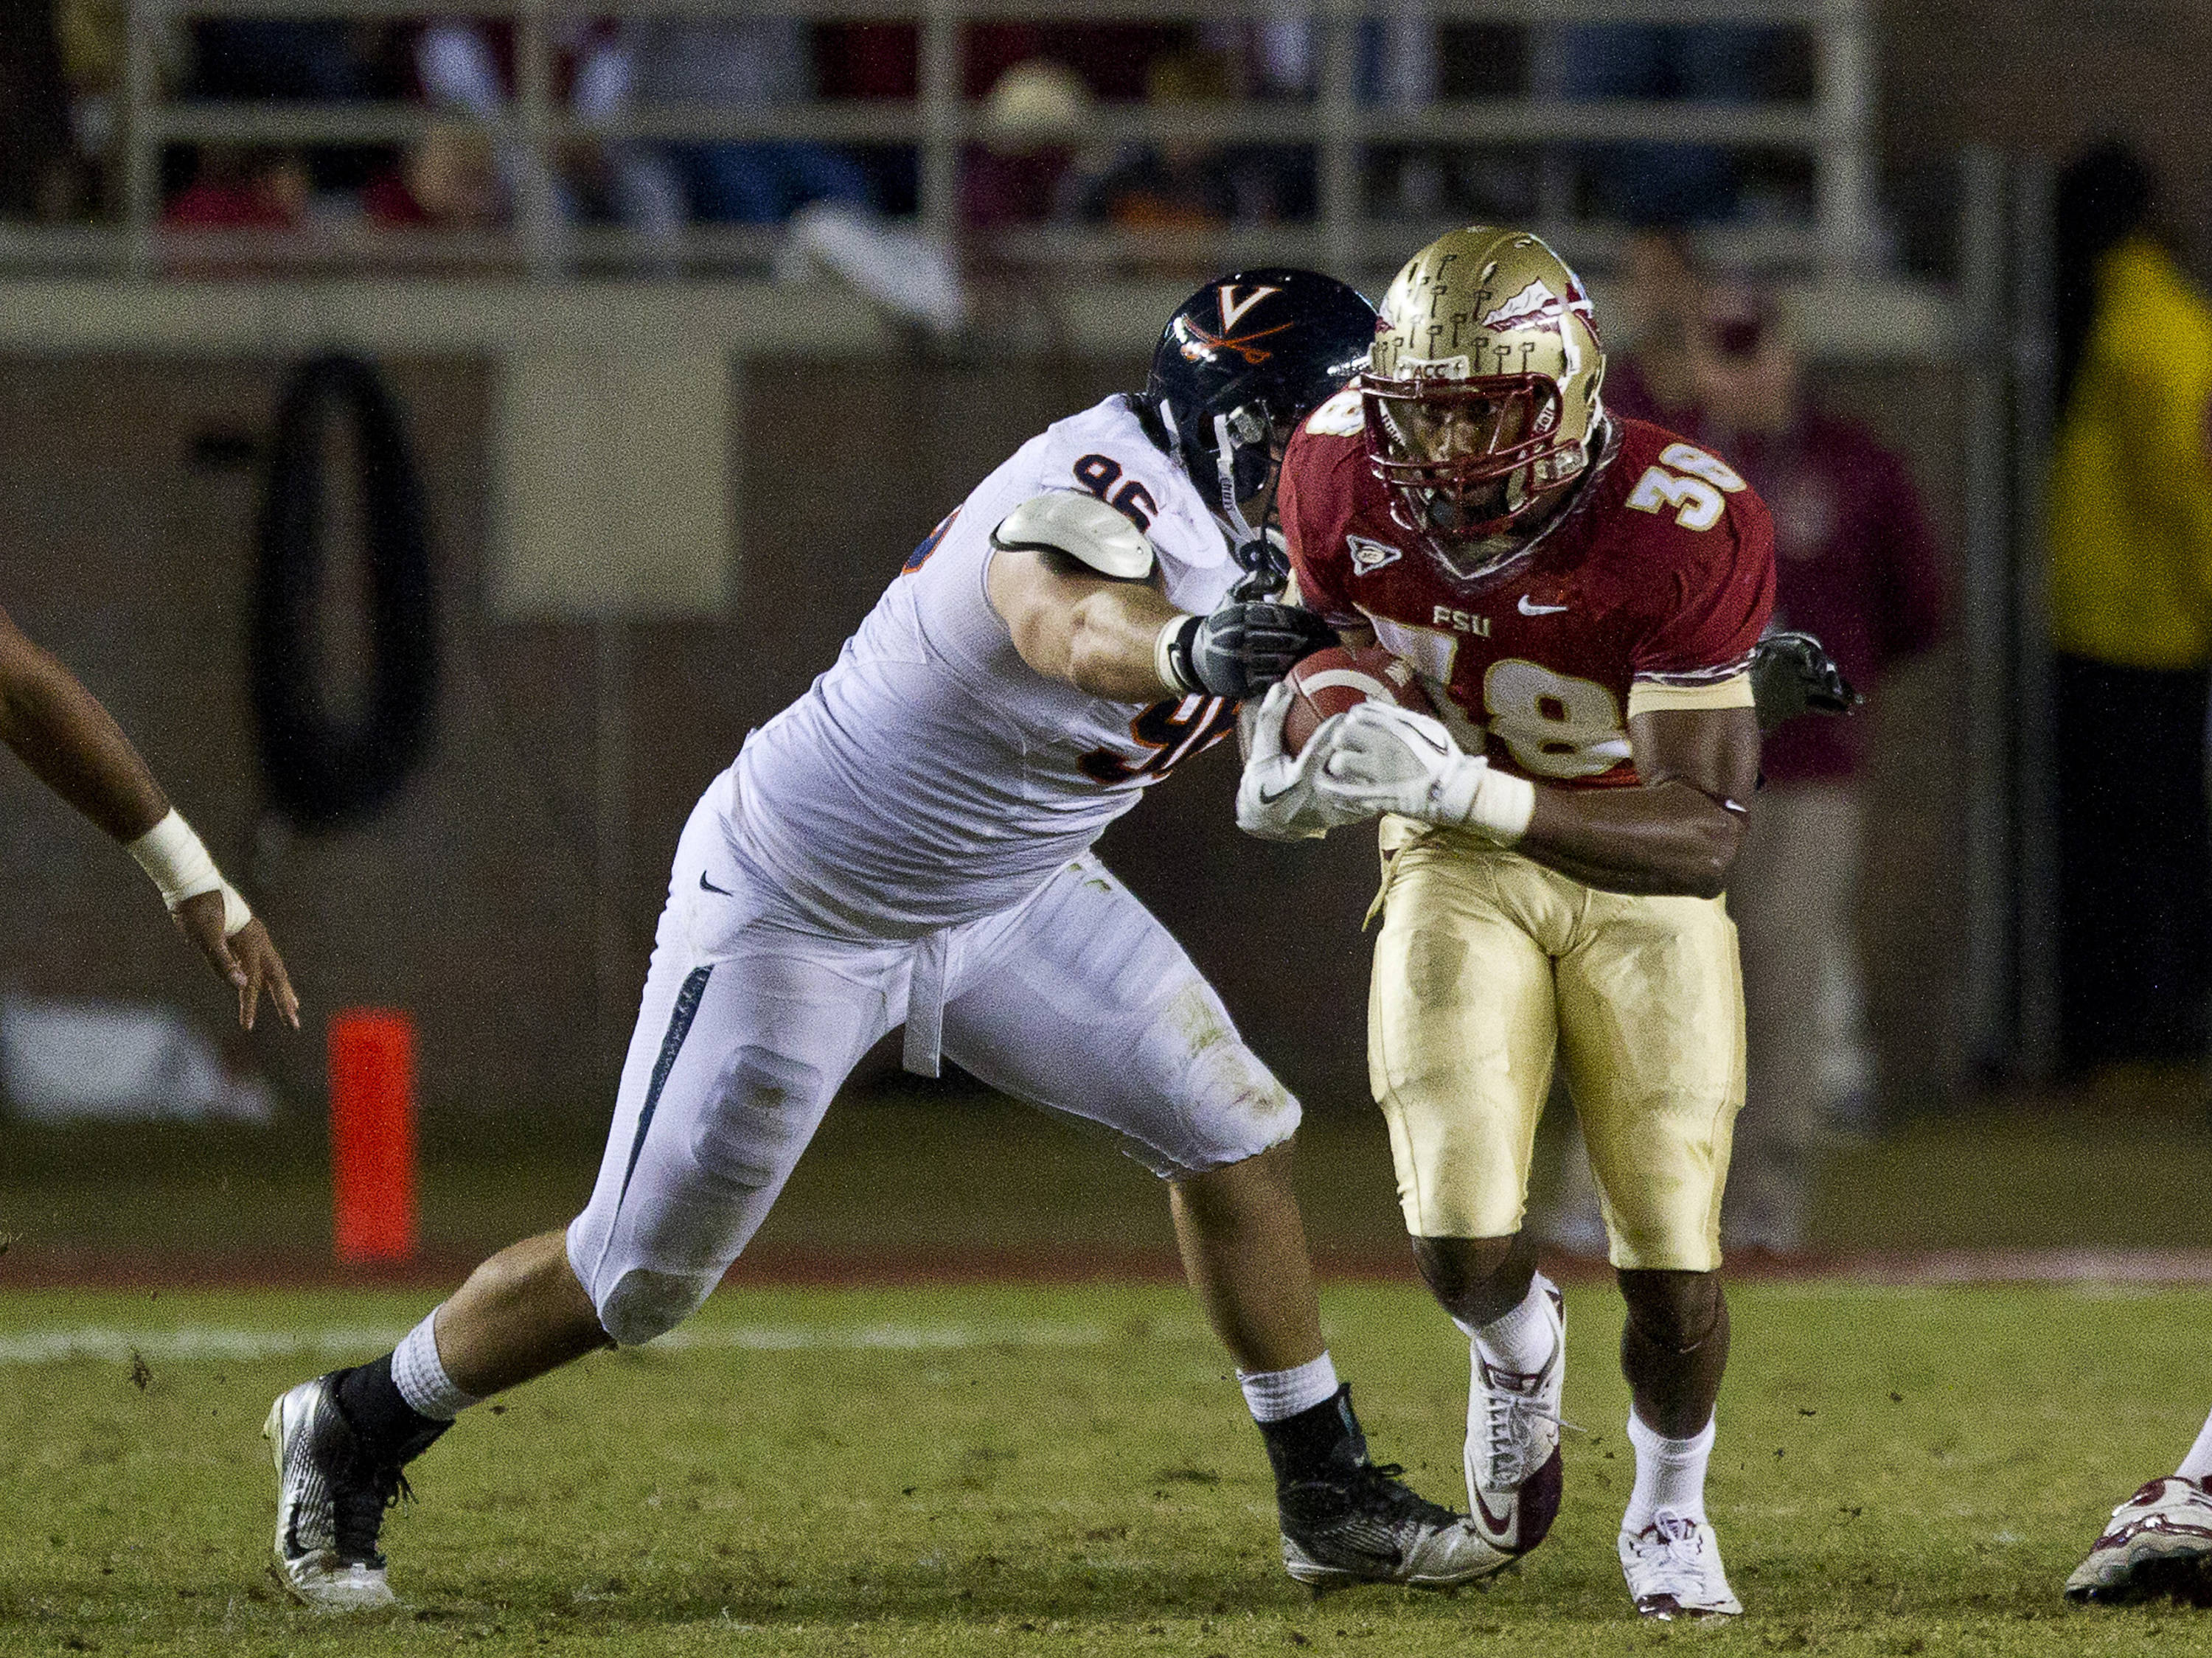 Jermaine Thomas (38) shakes off a defender during the game against Virginia on November 19, 2011.